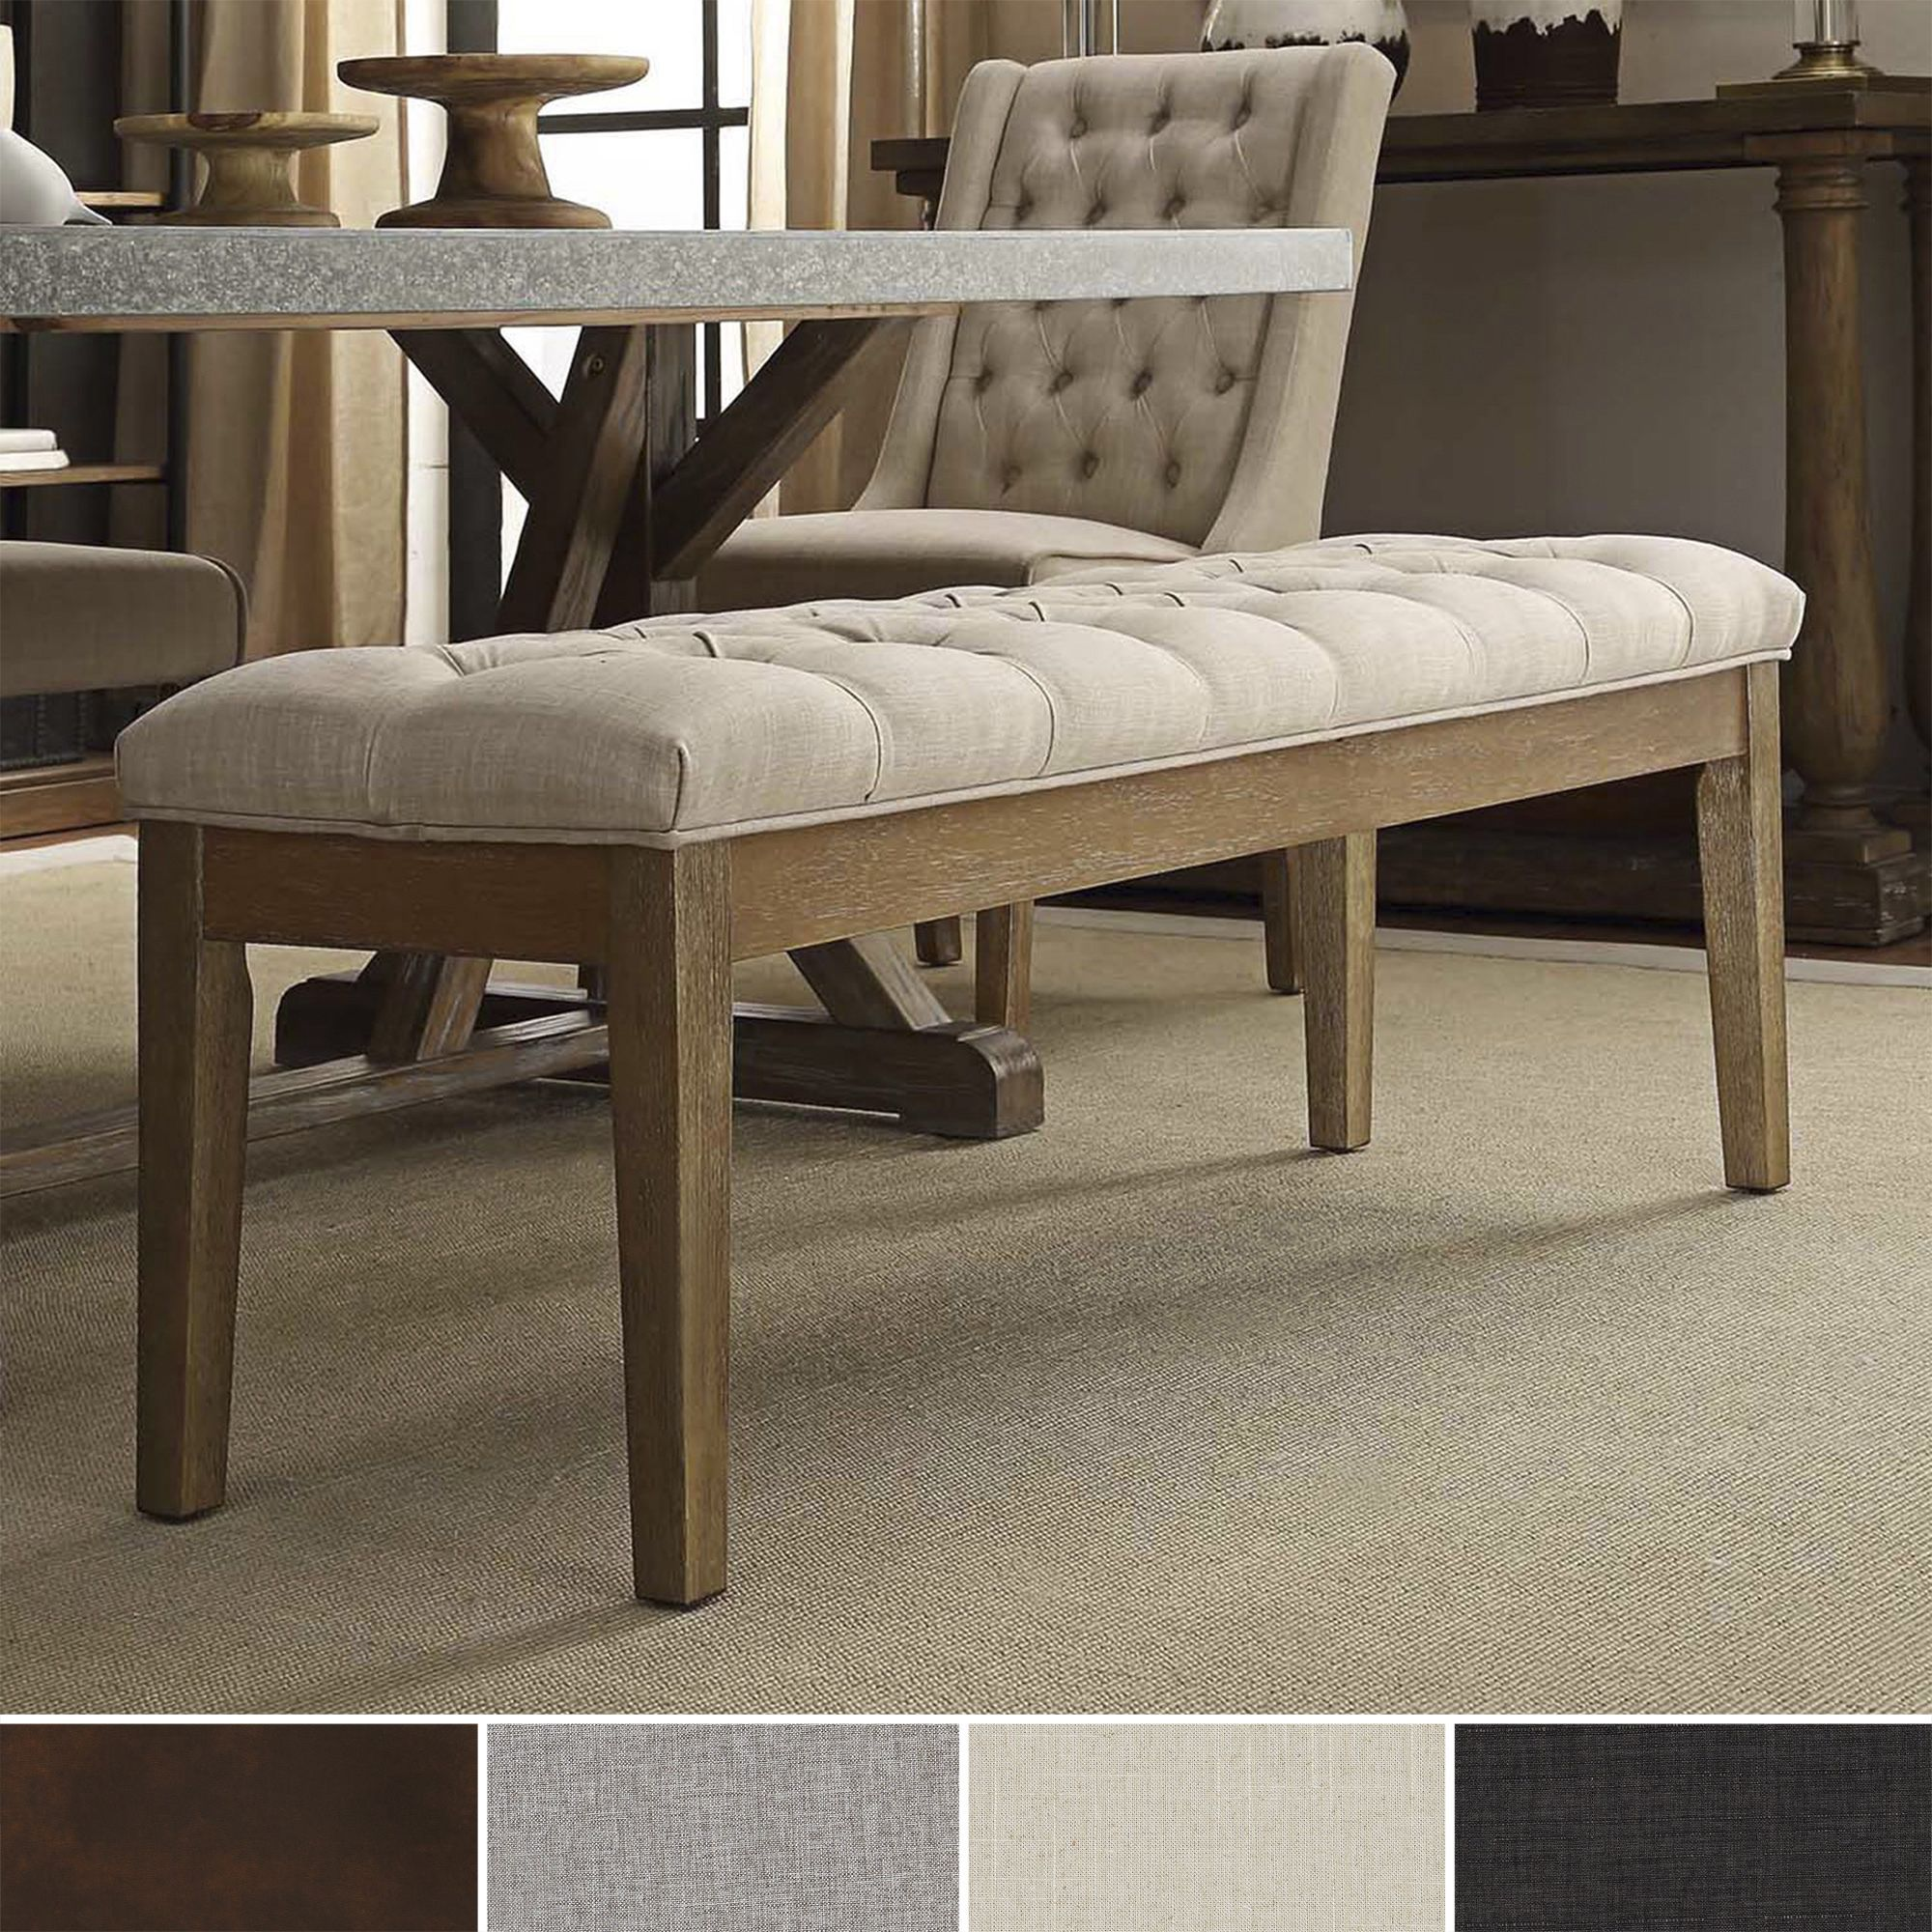 Benchwright Premium Tufted Reclaimed 52inch Upholstered